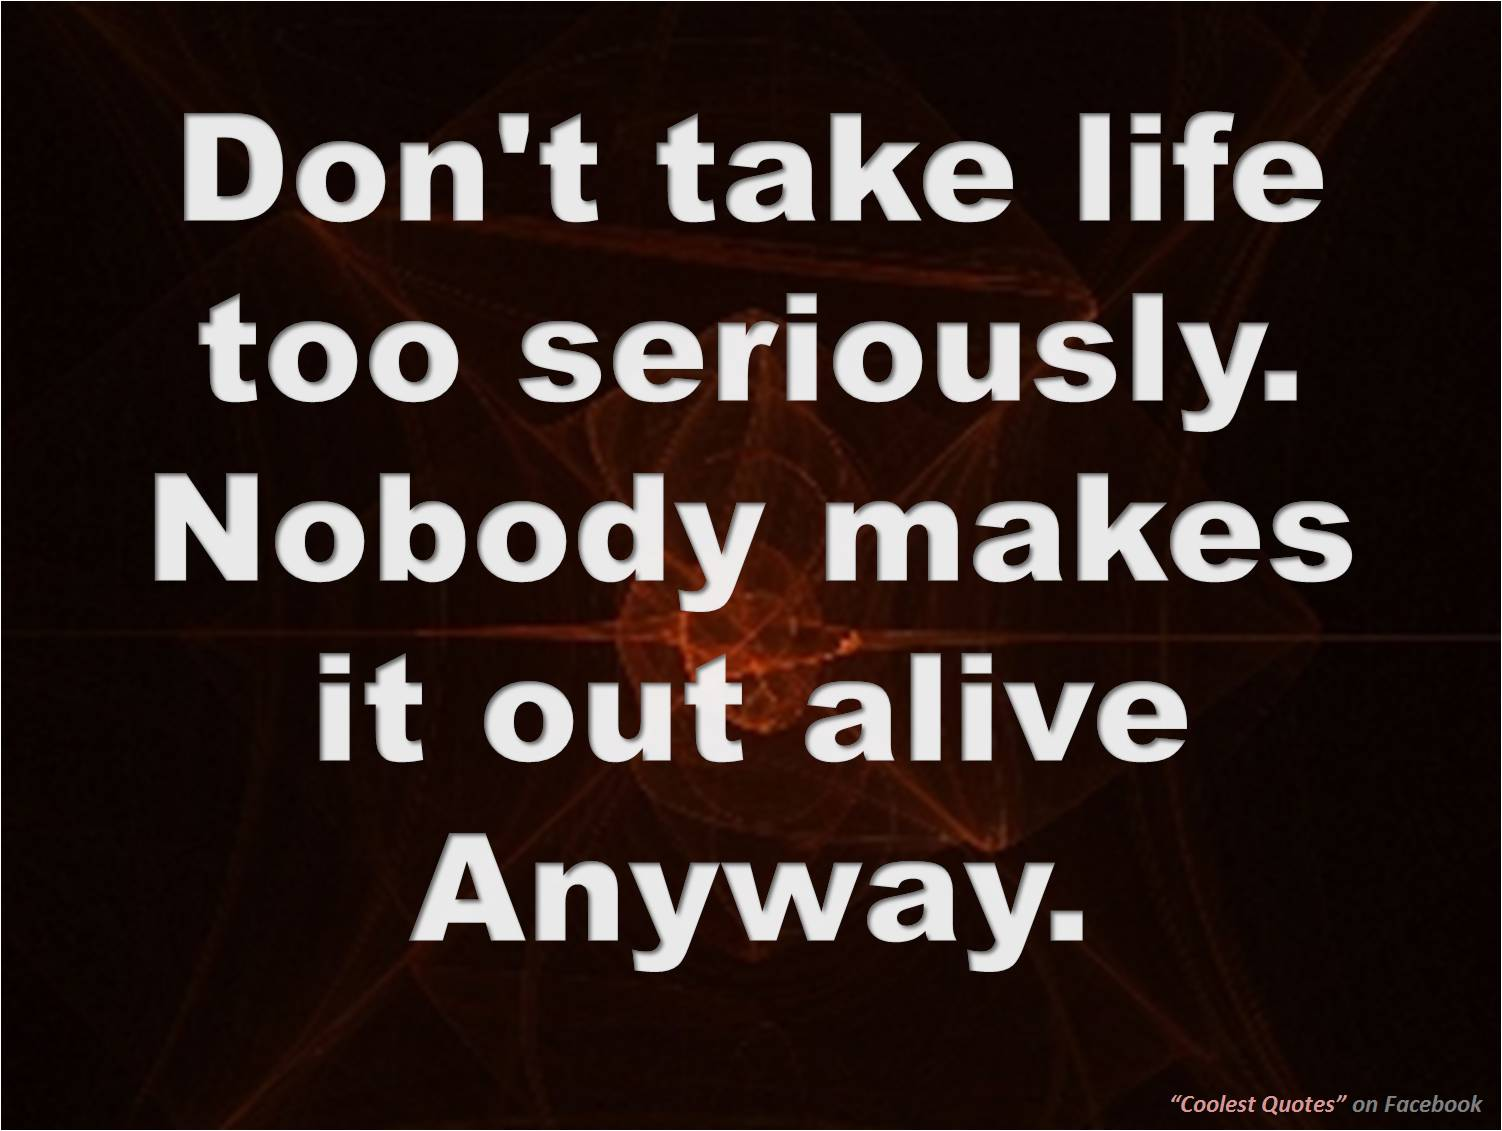 Serious Life Quotes Classy My Coolest Quotes Don't Take Life Too Seriously